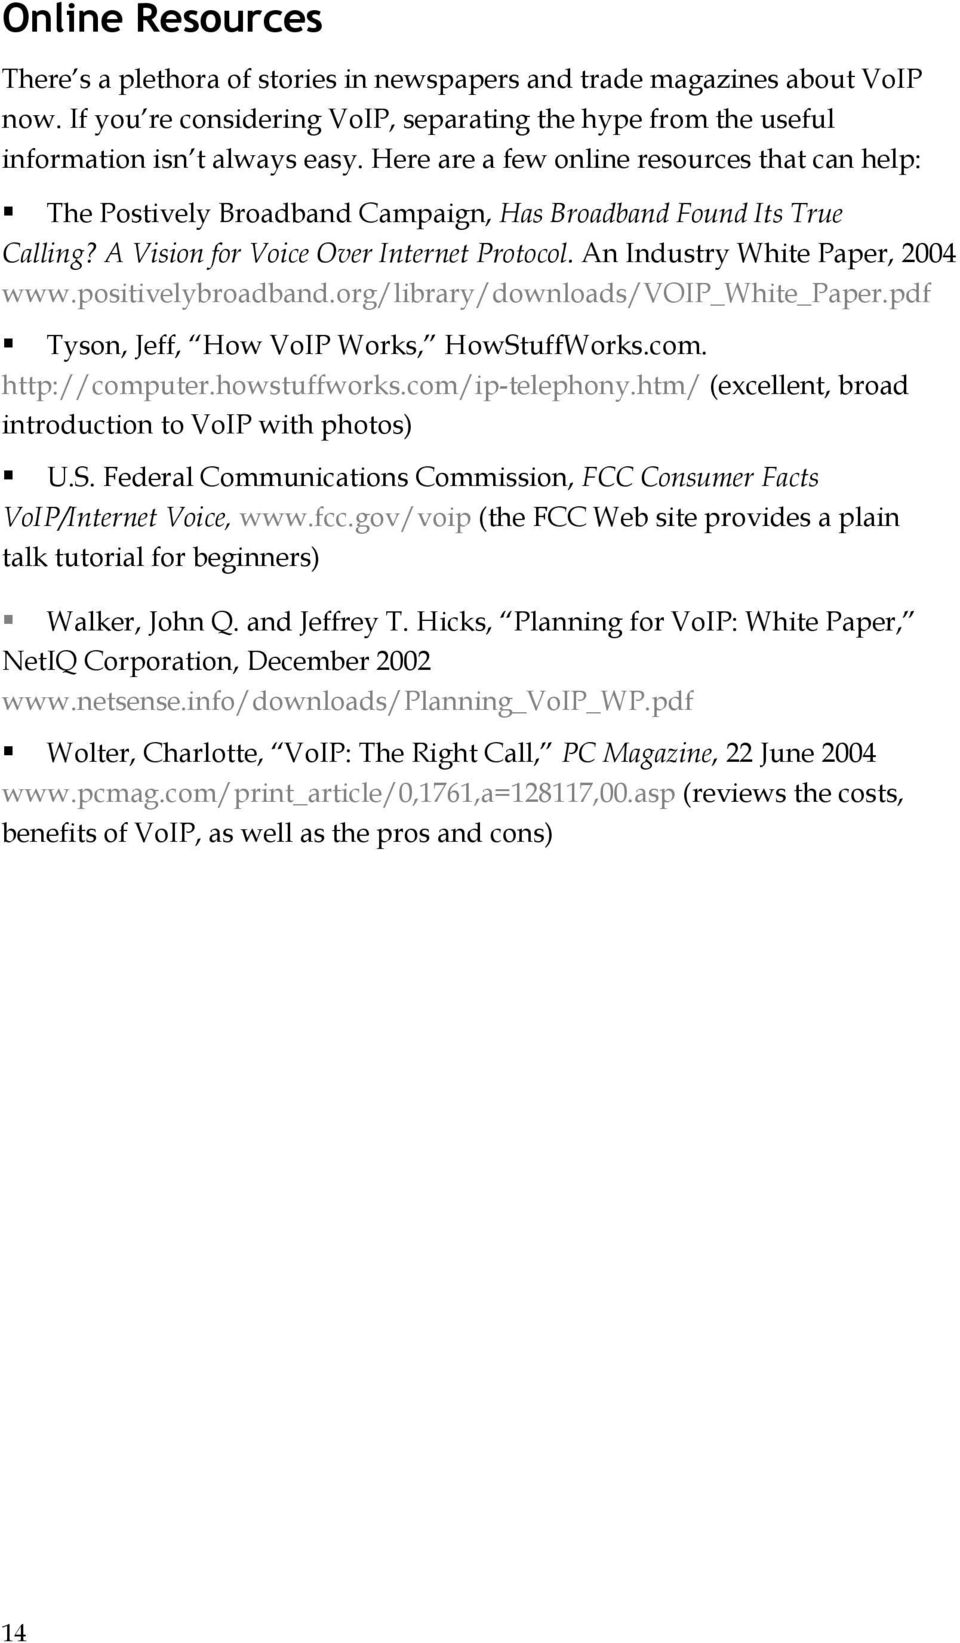 positivelybroadband.org/library/downloads/voip_white_paper.pdf Tyson, Jeff, How VoIP Works, HowStuffWorks.com. http://computer.howstuffworks.com/ip-telephony.